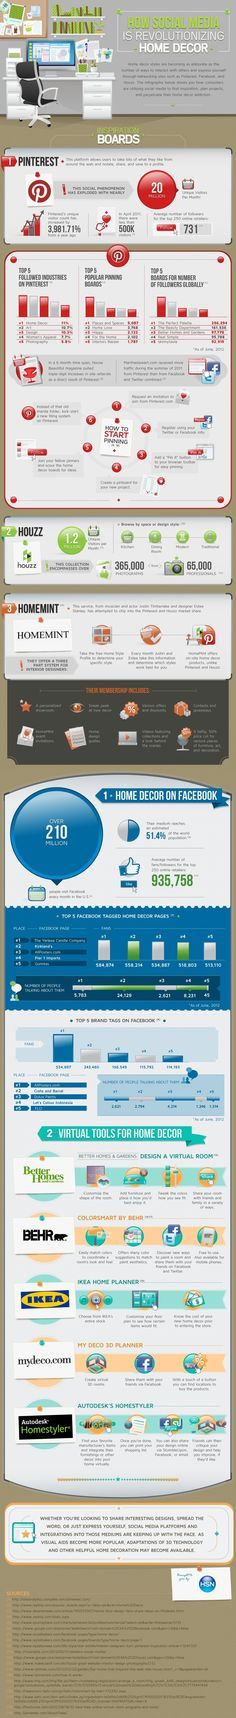 How Social Media is Revolutionizing Home Decor - Exclusive